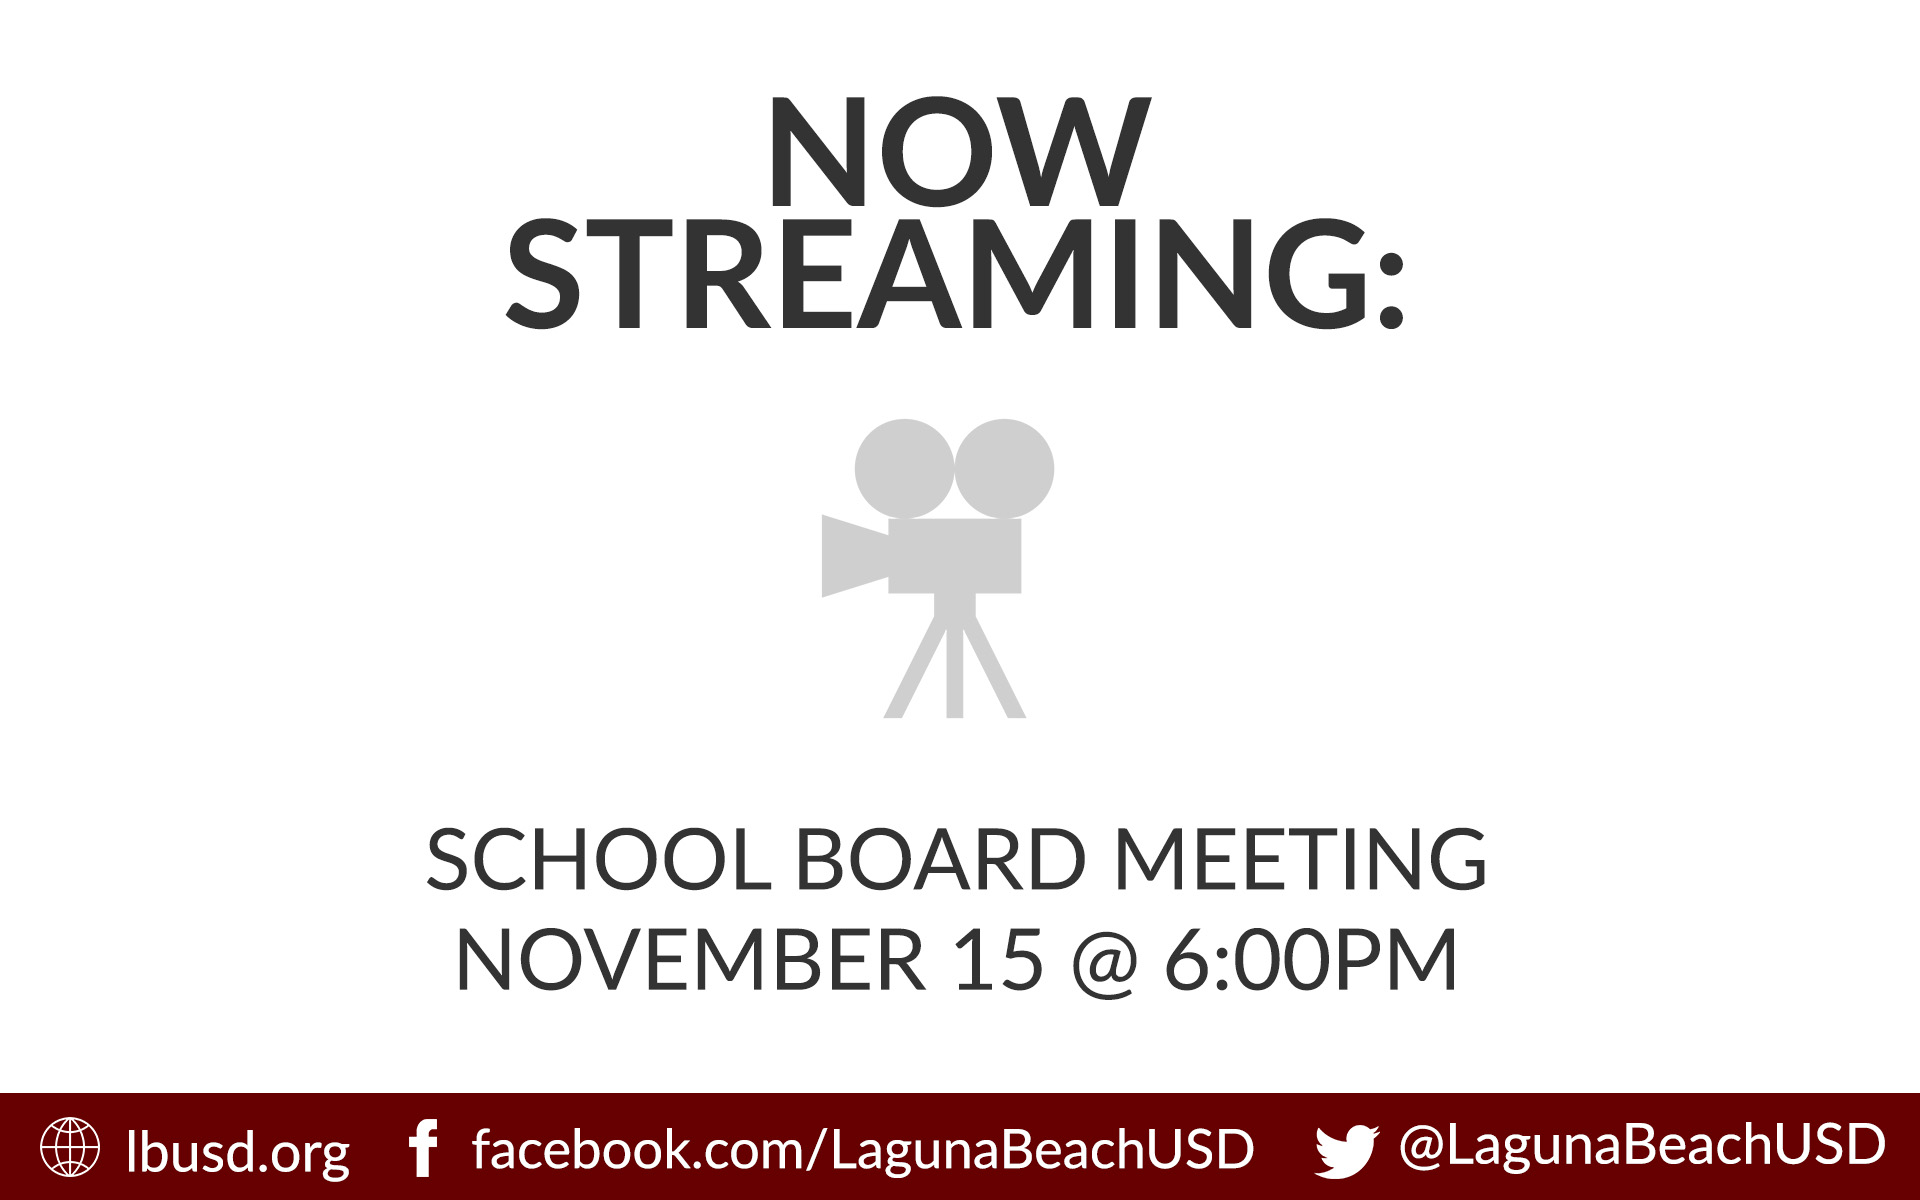 School Board Meeting Streamed